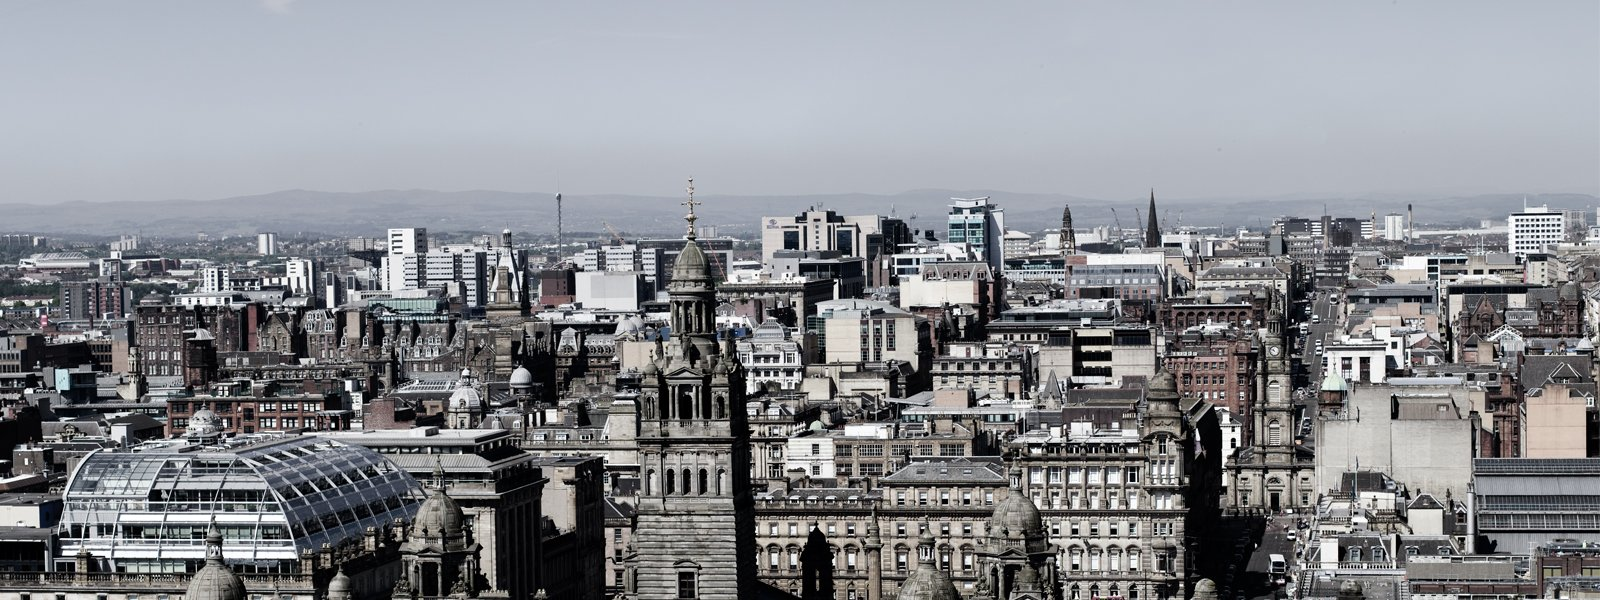 View overlooking Glasgow from the top of Livingston Tower